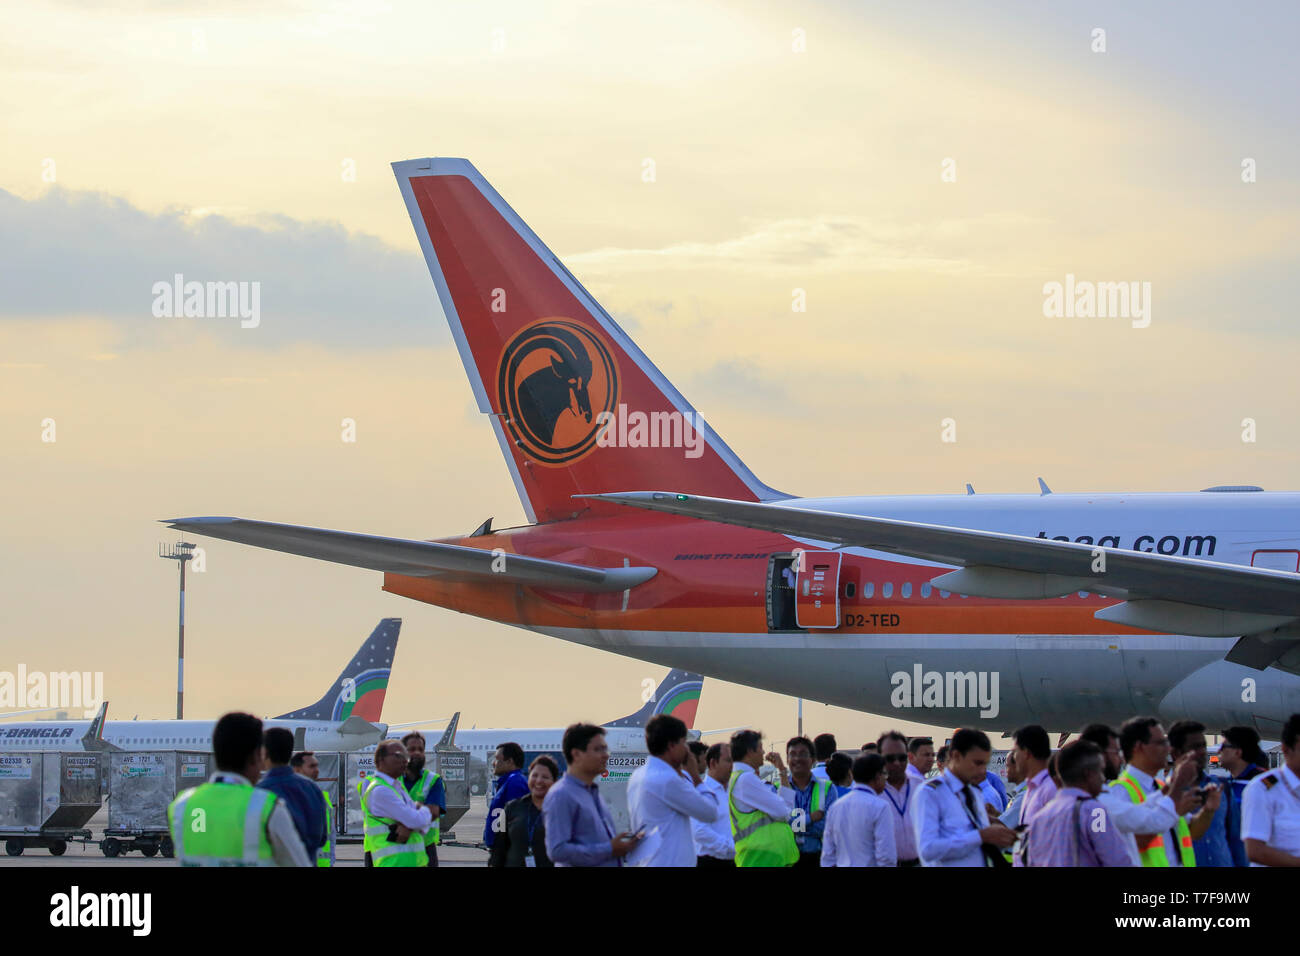 Vertical stabilizer of a Taag Angola Airlines Boeing 777-200 ER aircraft at Hazrat Shahjalal Hazrat Shahjalal International Airport in Dhaka, Banglade - Stock Image